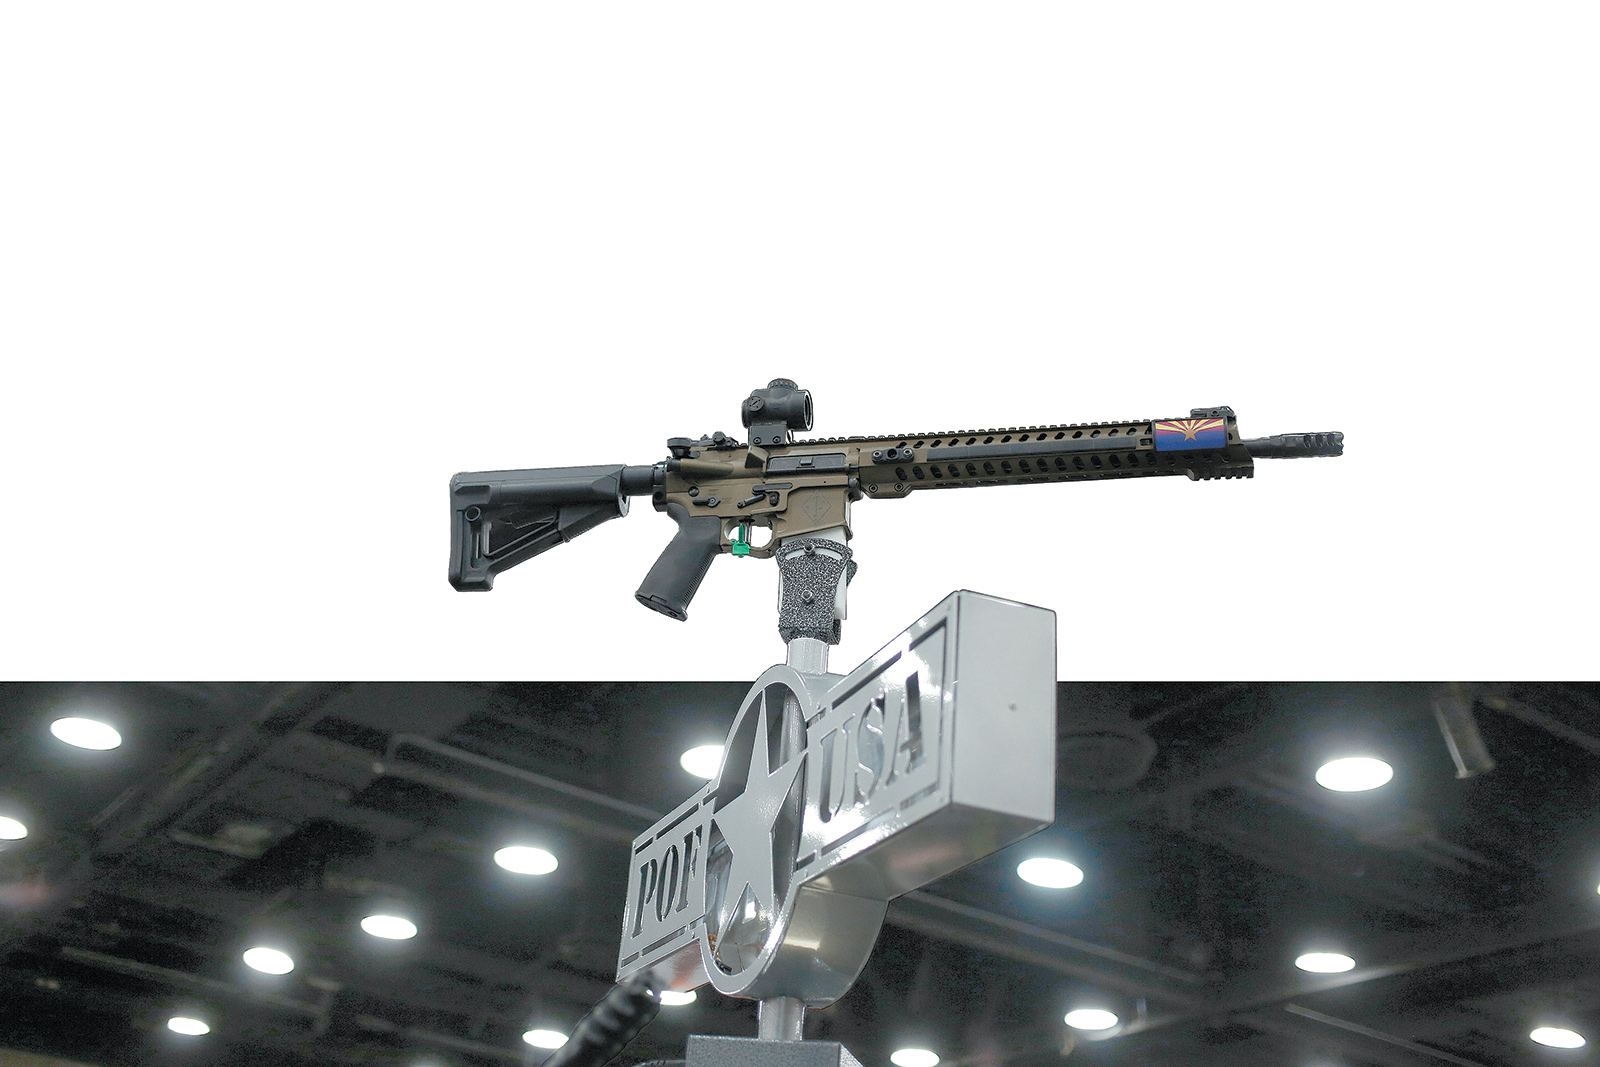 An AR-15 rifle, an assault weapon similar to the one used by Omar Mateen in the June 12 shooting in Orlando, on display at the National Rifle Association's annual meeting, Louisville, Kentucky, May 20, 2016